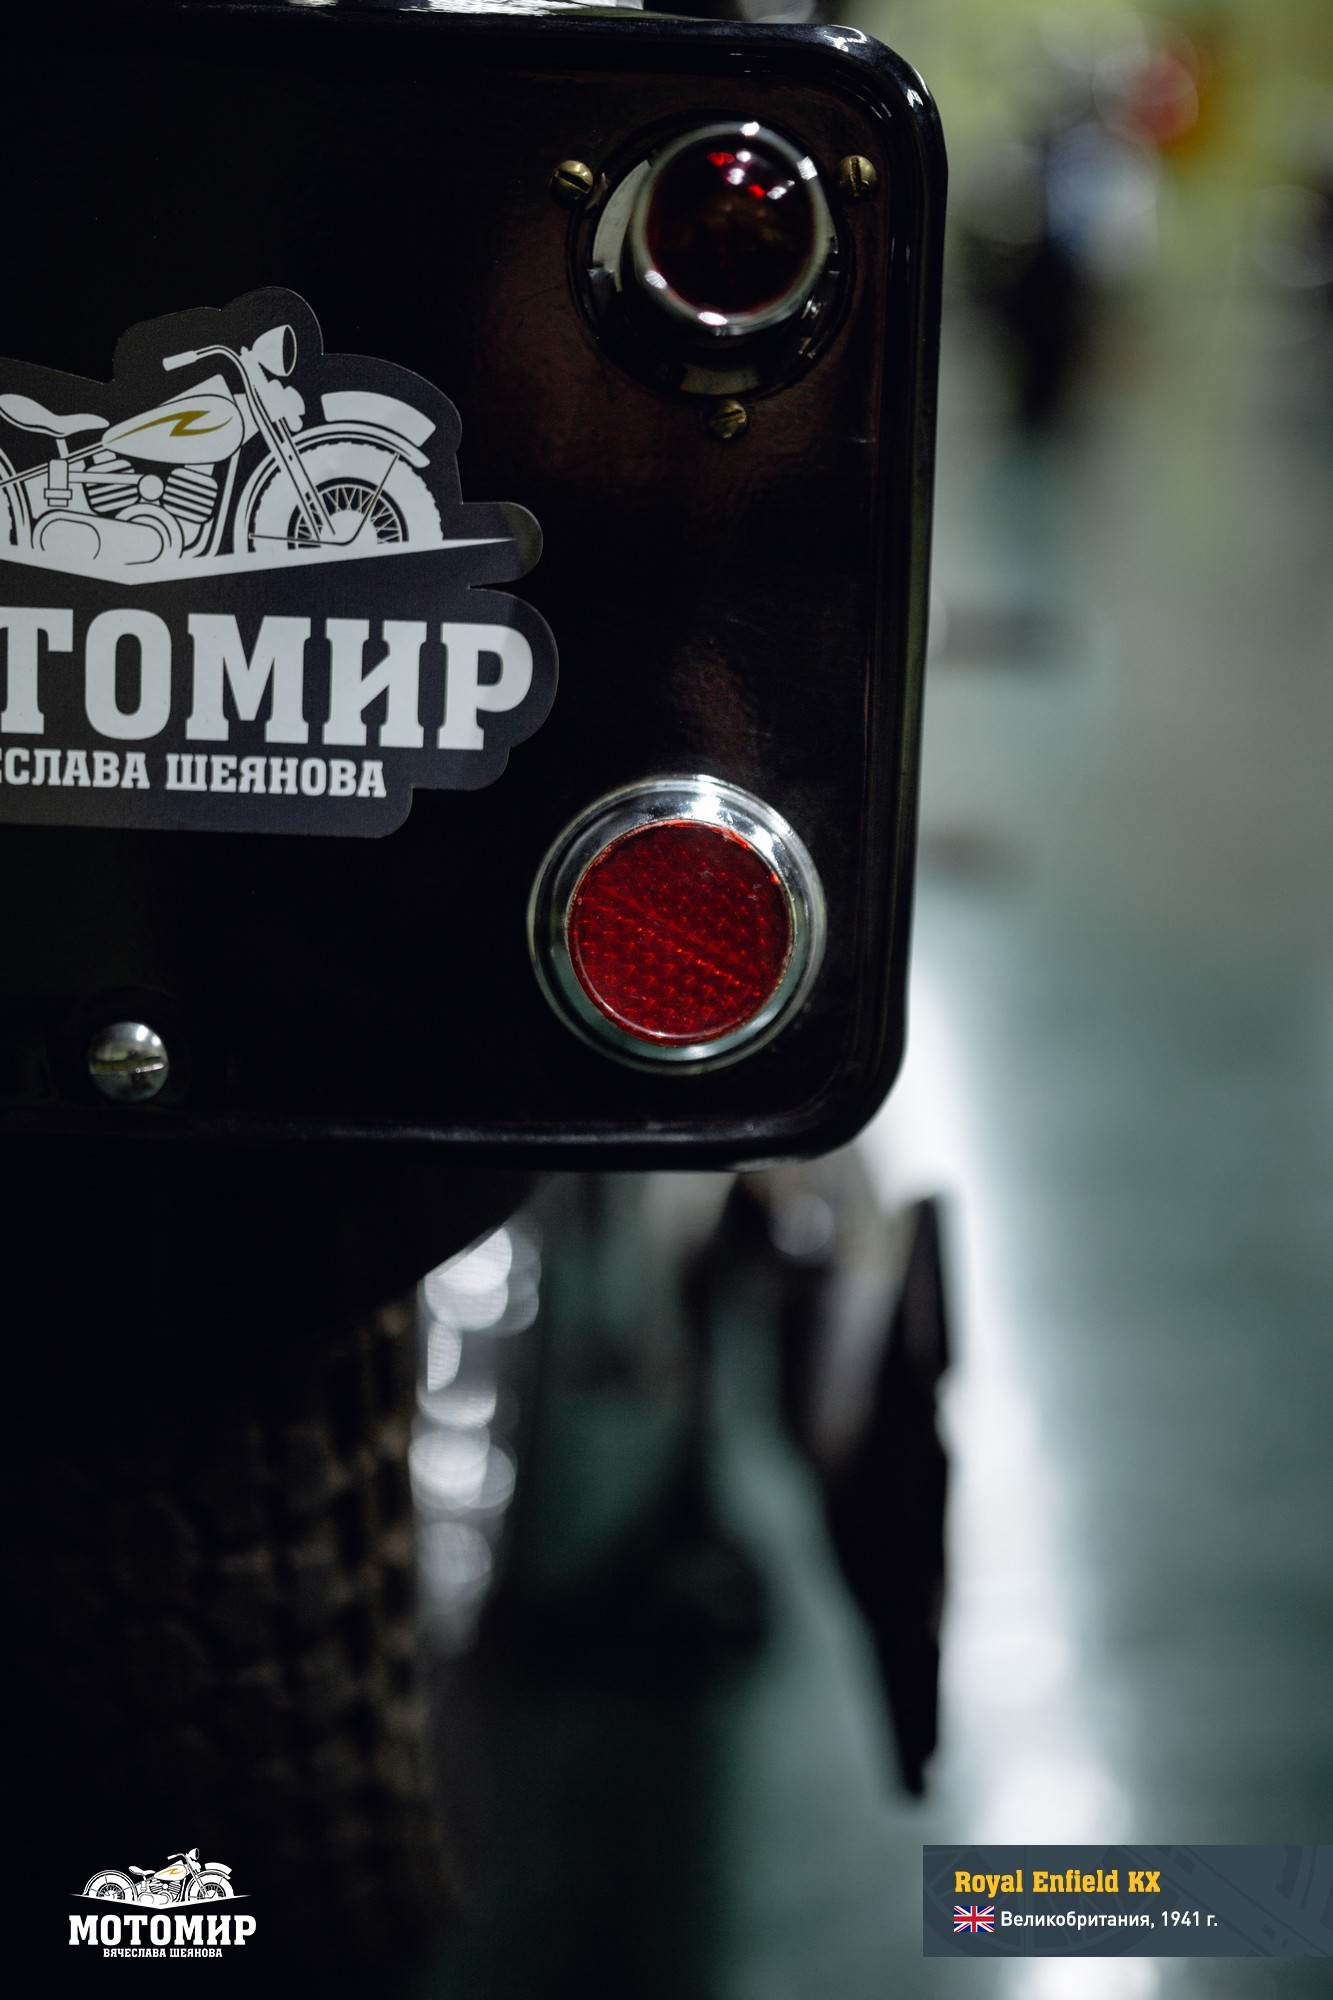 royal-enfield-kx-201601-web-46